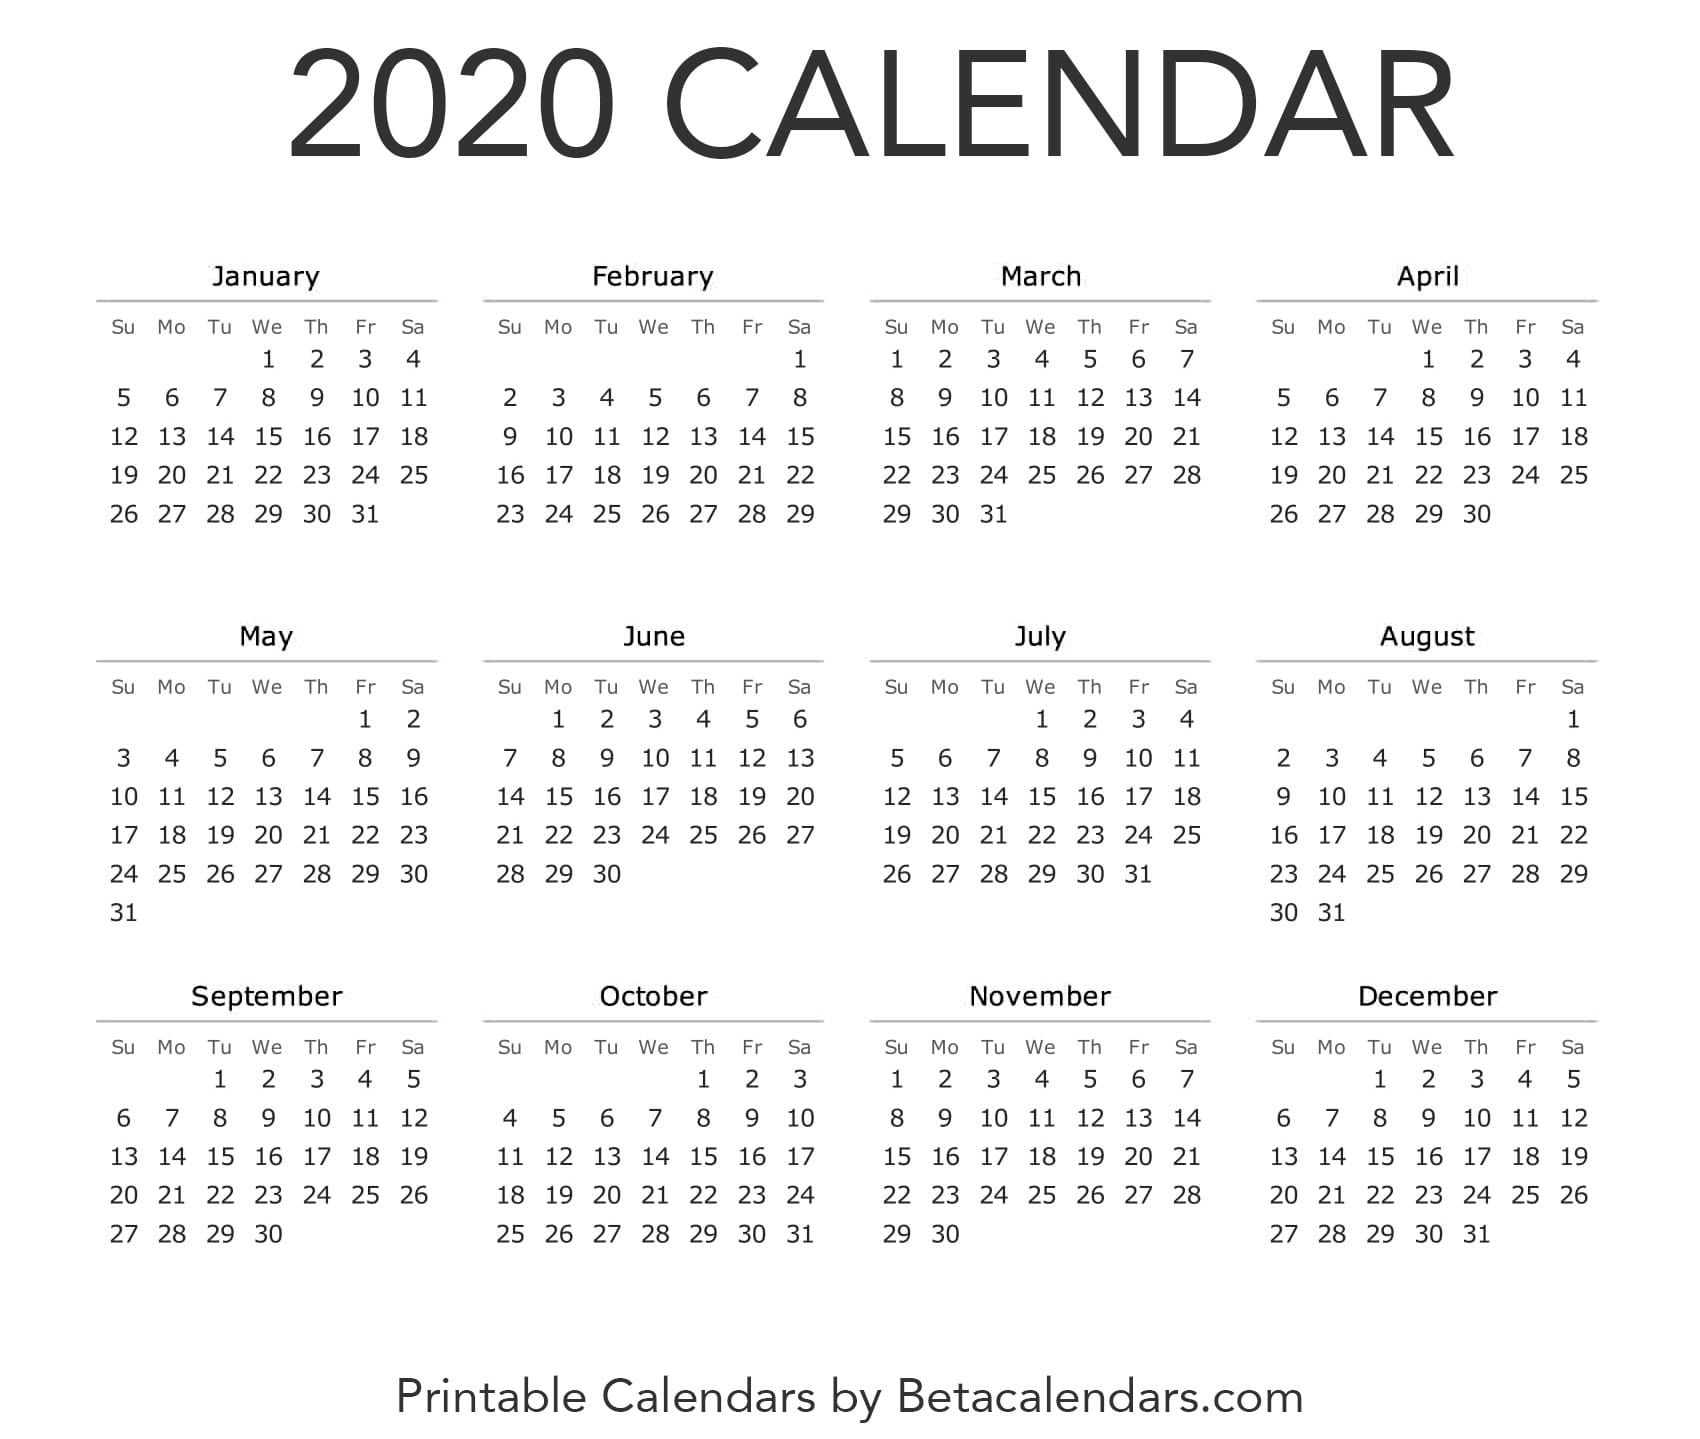 Printable 2020 Calendar Monthly calendar printable